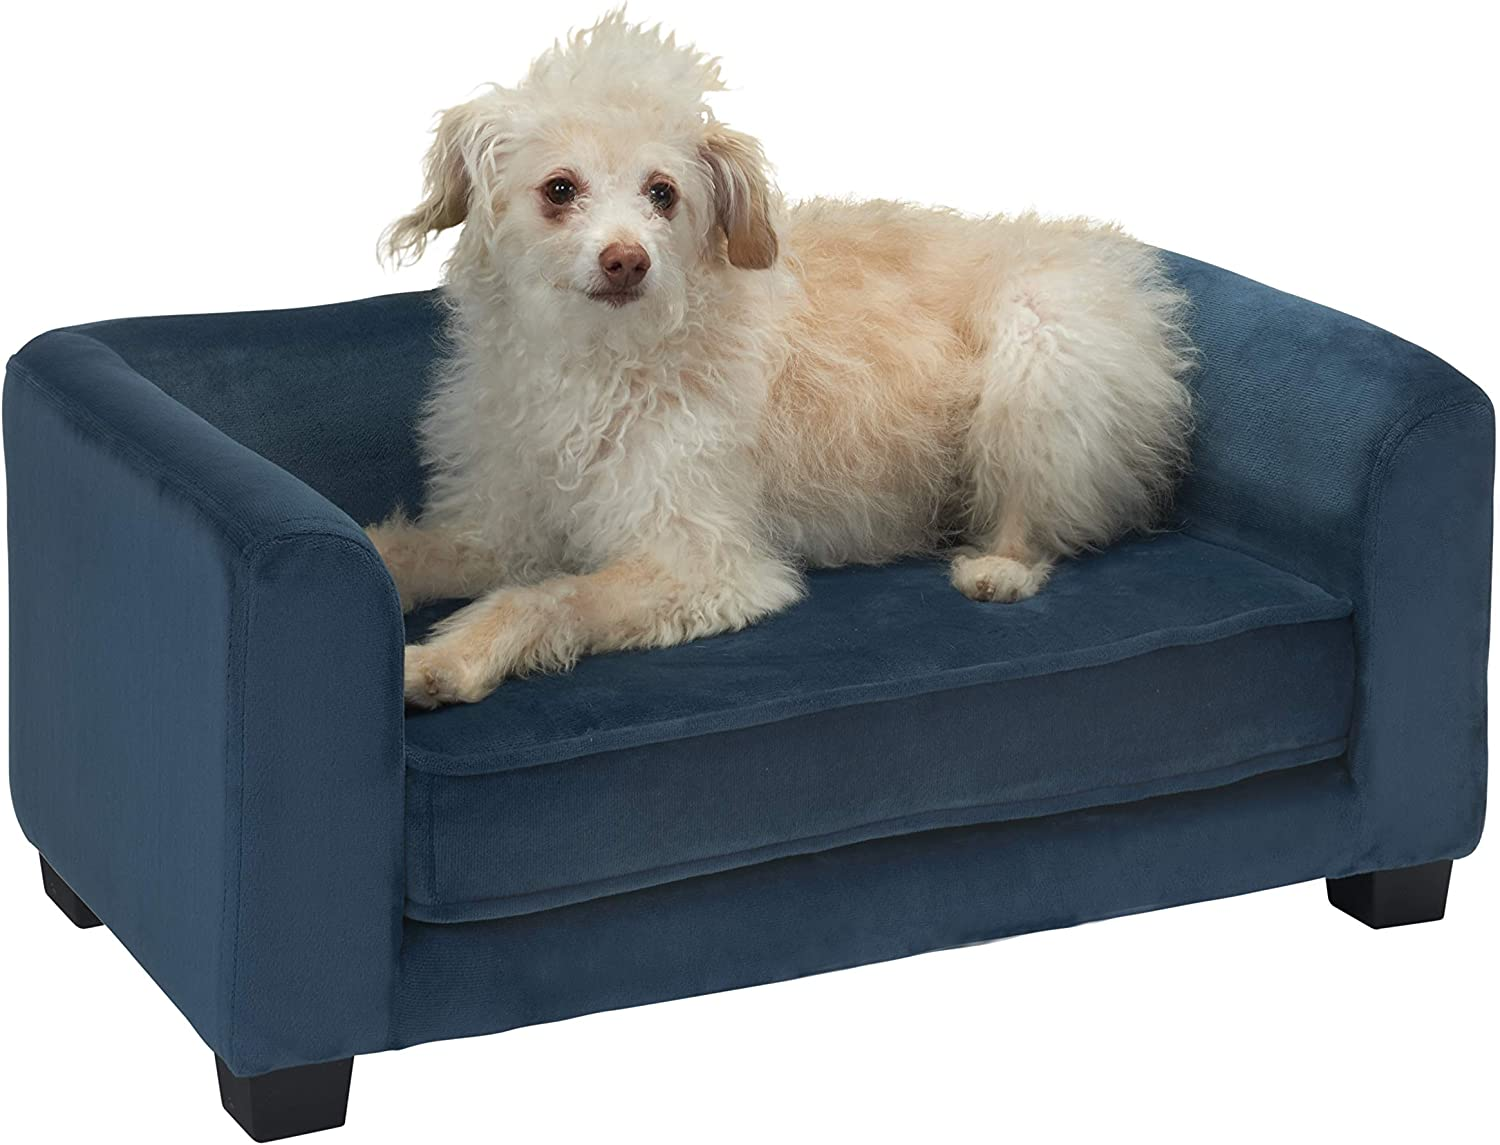 Enchanted Home Pet Surrey A surprise price OFFicial site is realized Sofa CO3429-20PCK - Blue Peacock